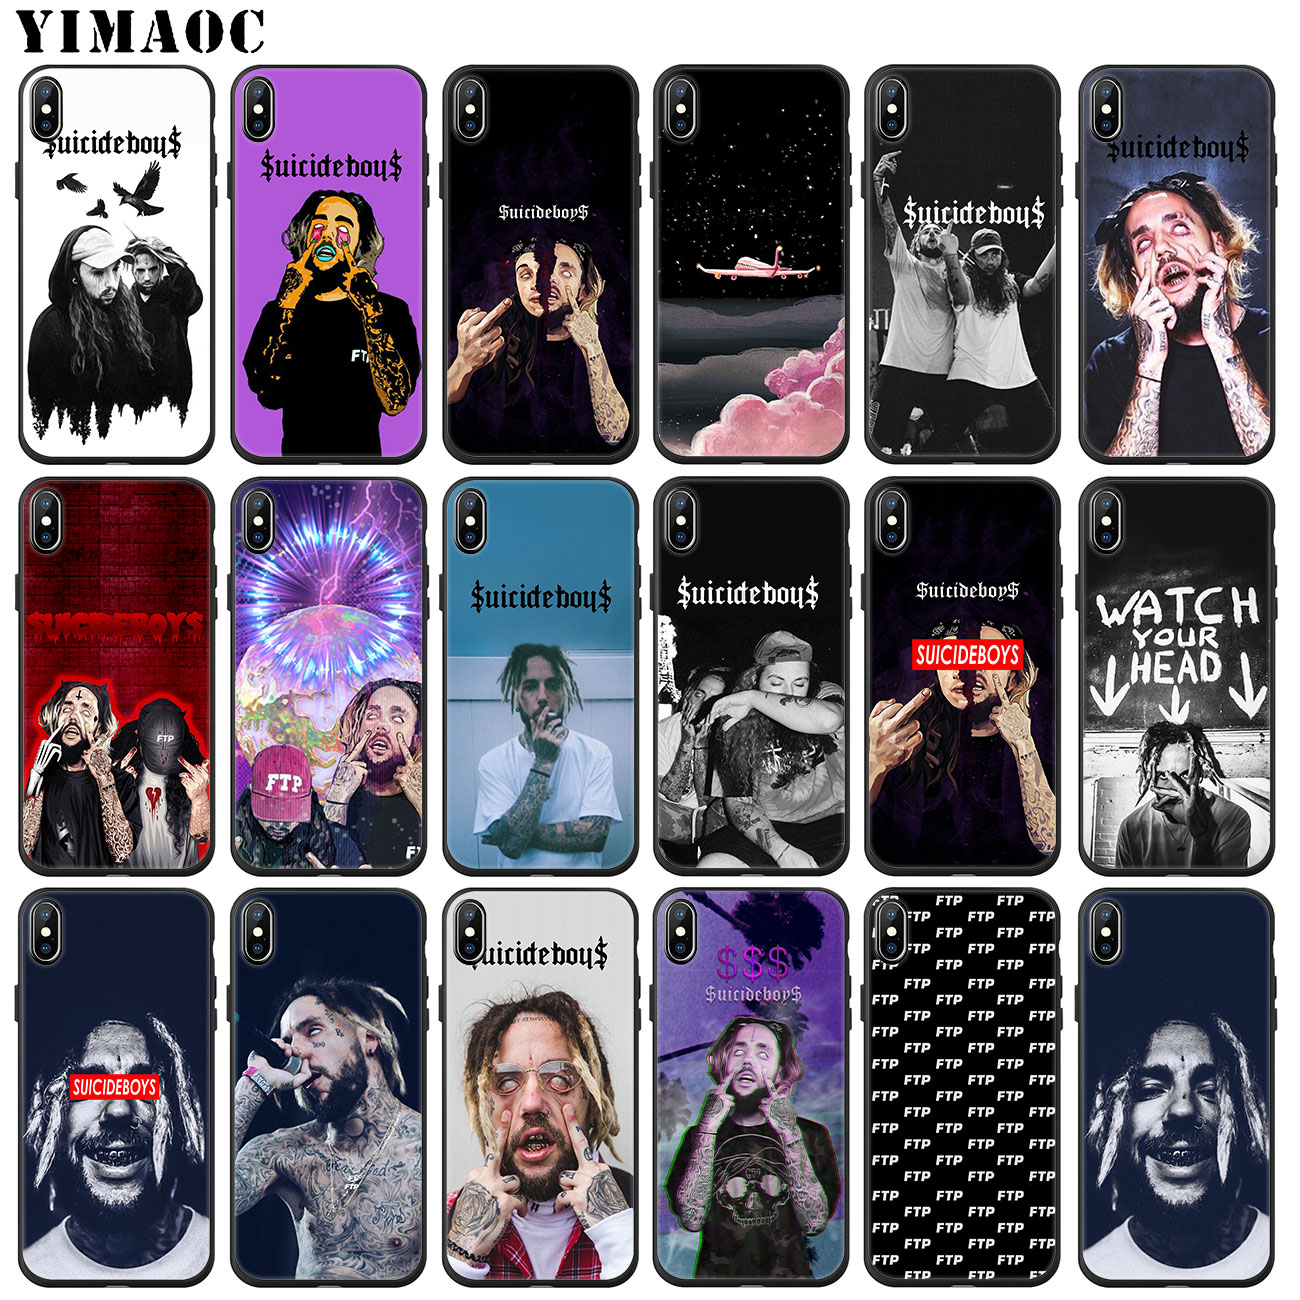 YIMAOC FTP $ uicideboy $ uicideboy Suicideboys Weichen Silikon Telefon Fall für <font><b>iPhone</b></font> 11 Pro XS Max XR X 6 6S 7 8 Plus 5 <font><b>5S</b></font> SE 10 image